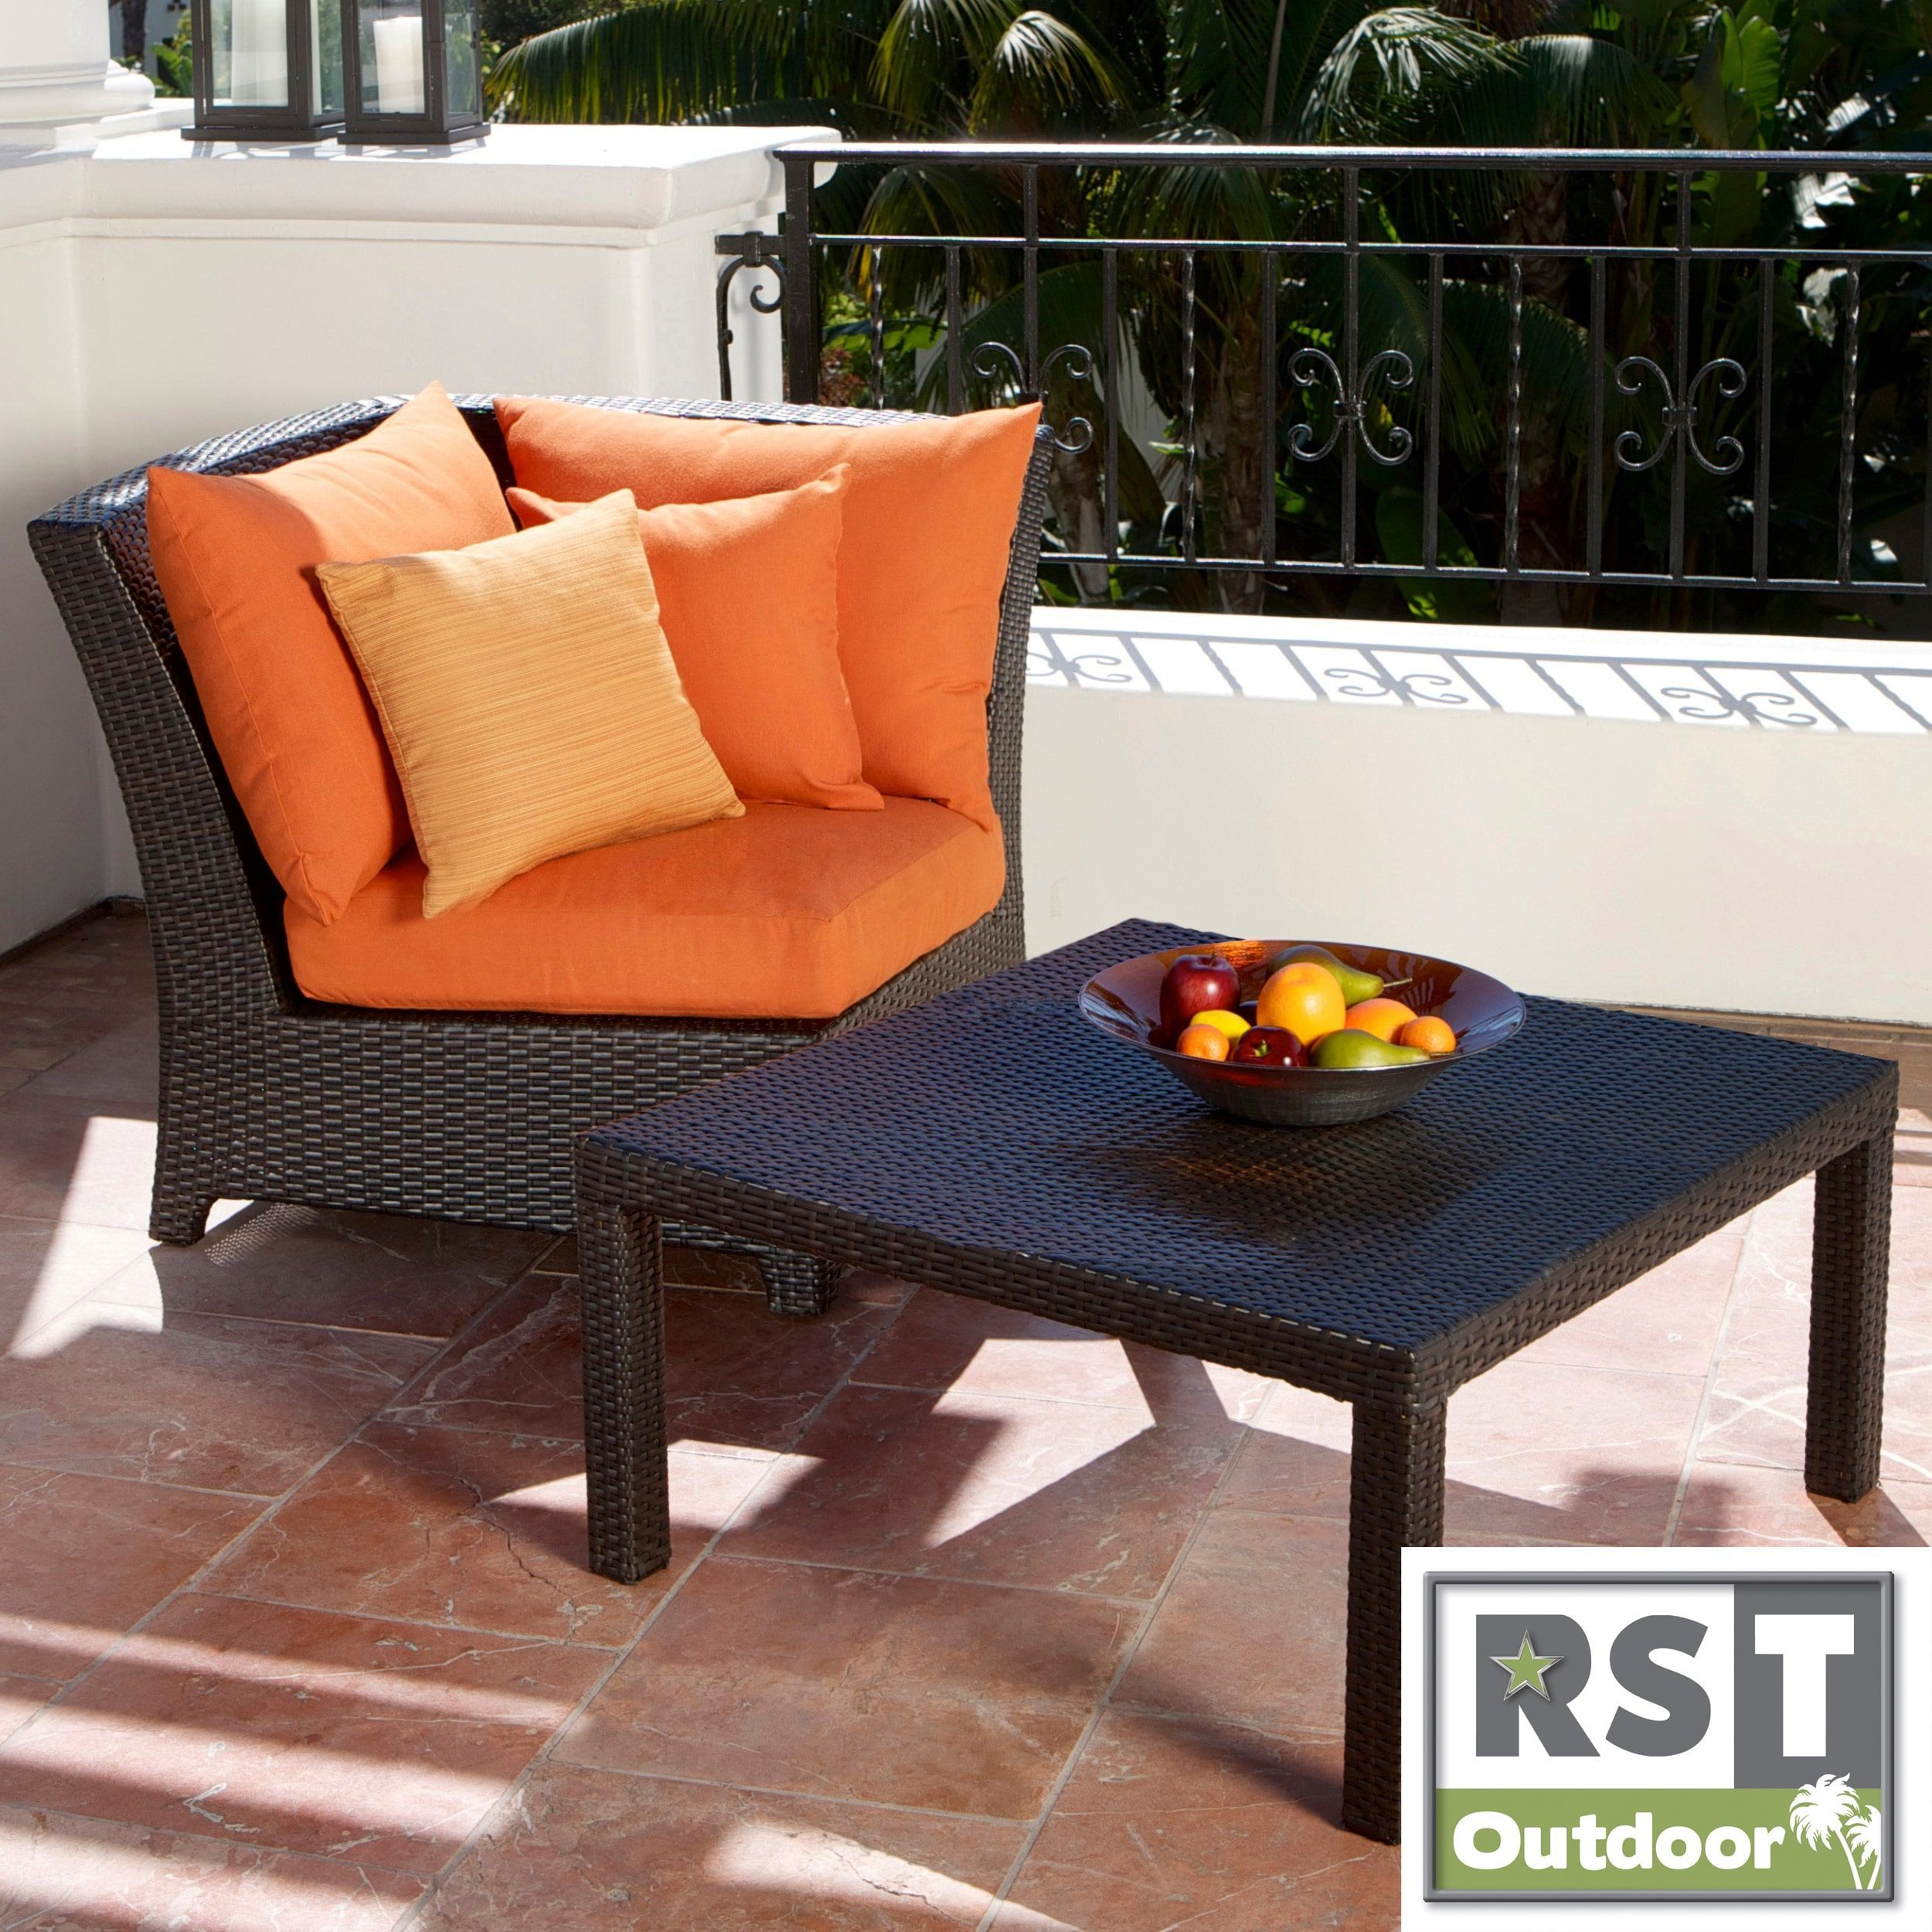 RST Outdoor Tikka Patio Furniture Corner Section and Coffee Table